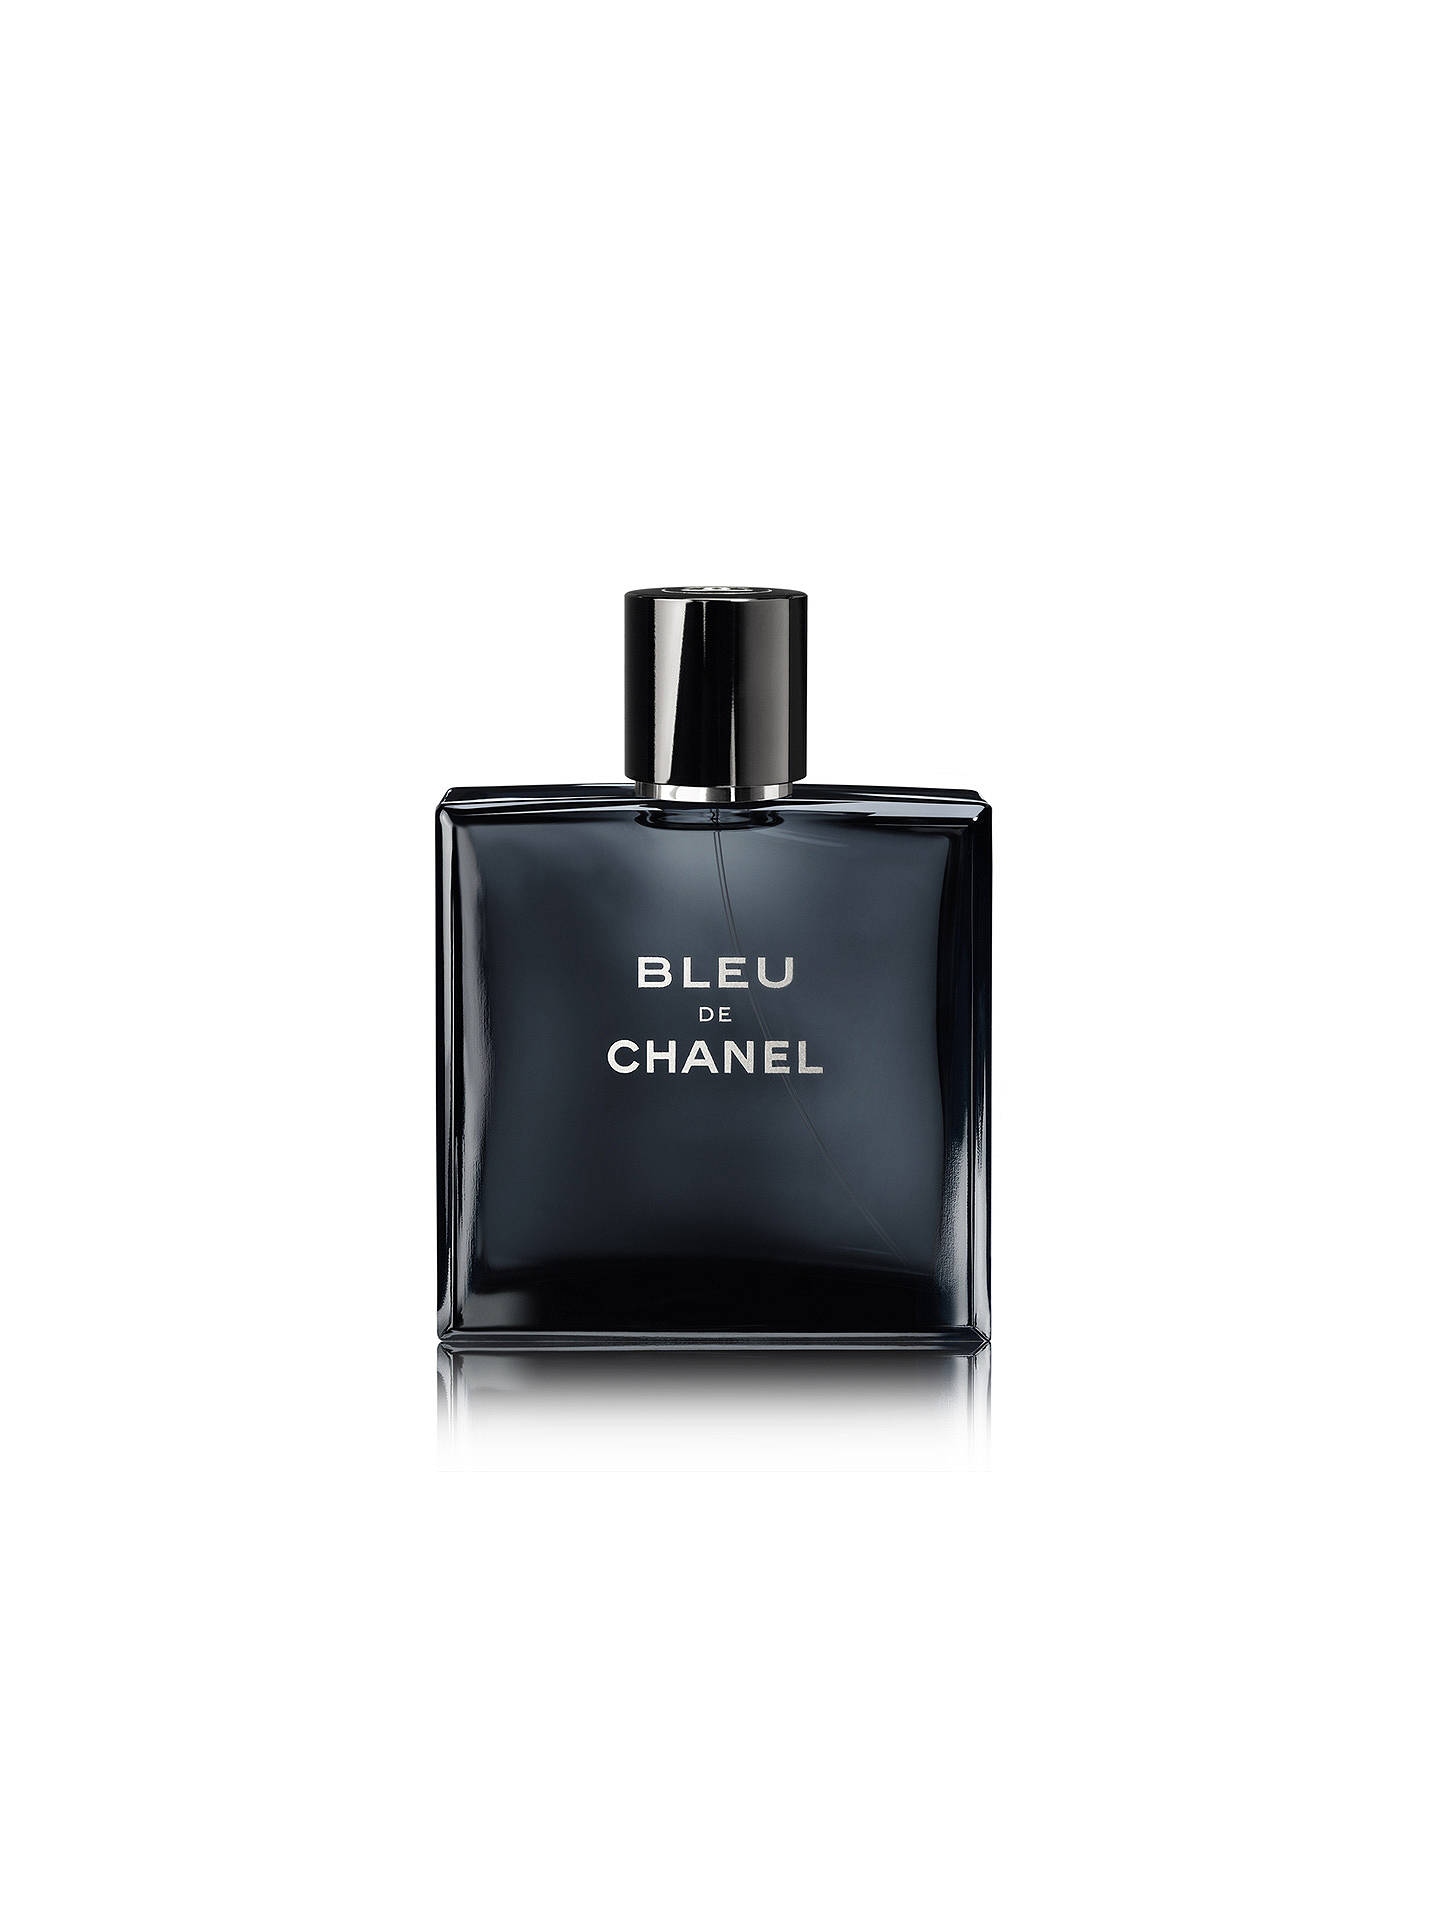 166efdc13df CHANEL BLEU DE CHANEL Eau de Toilette Spray at John Lewis   Partners